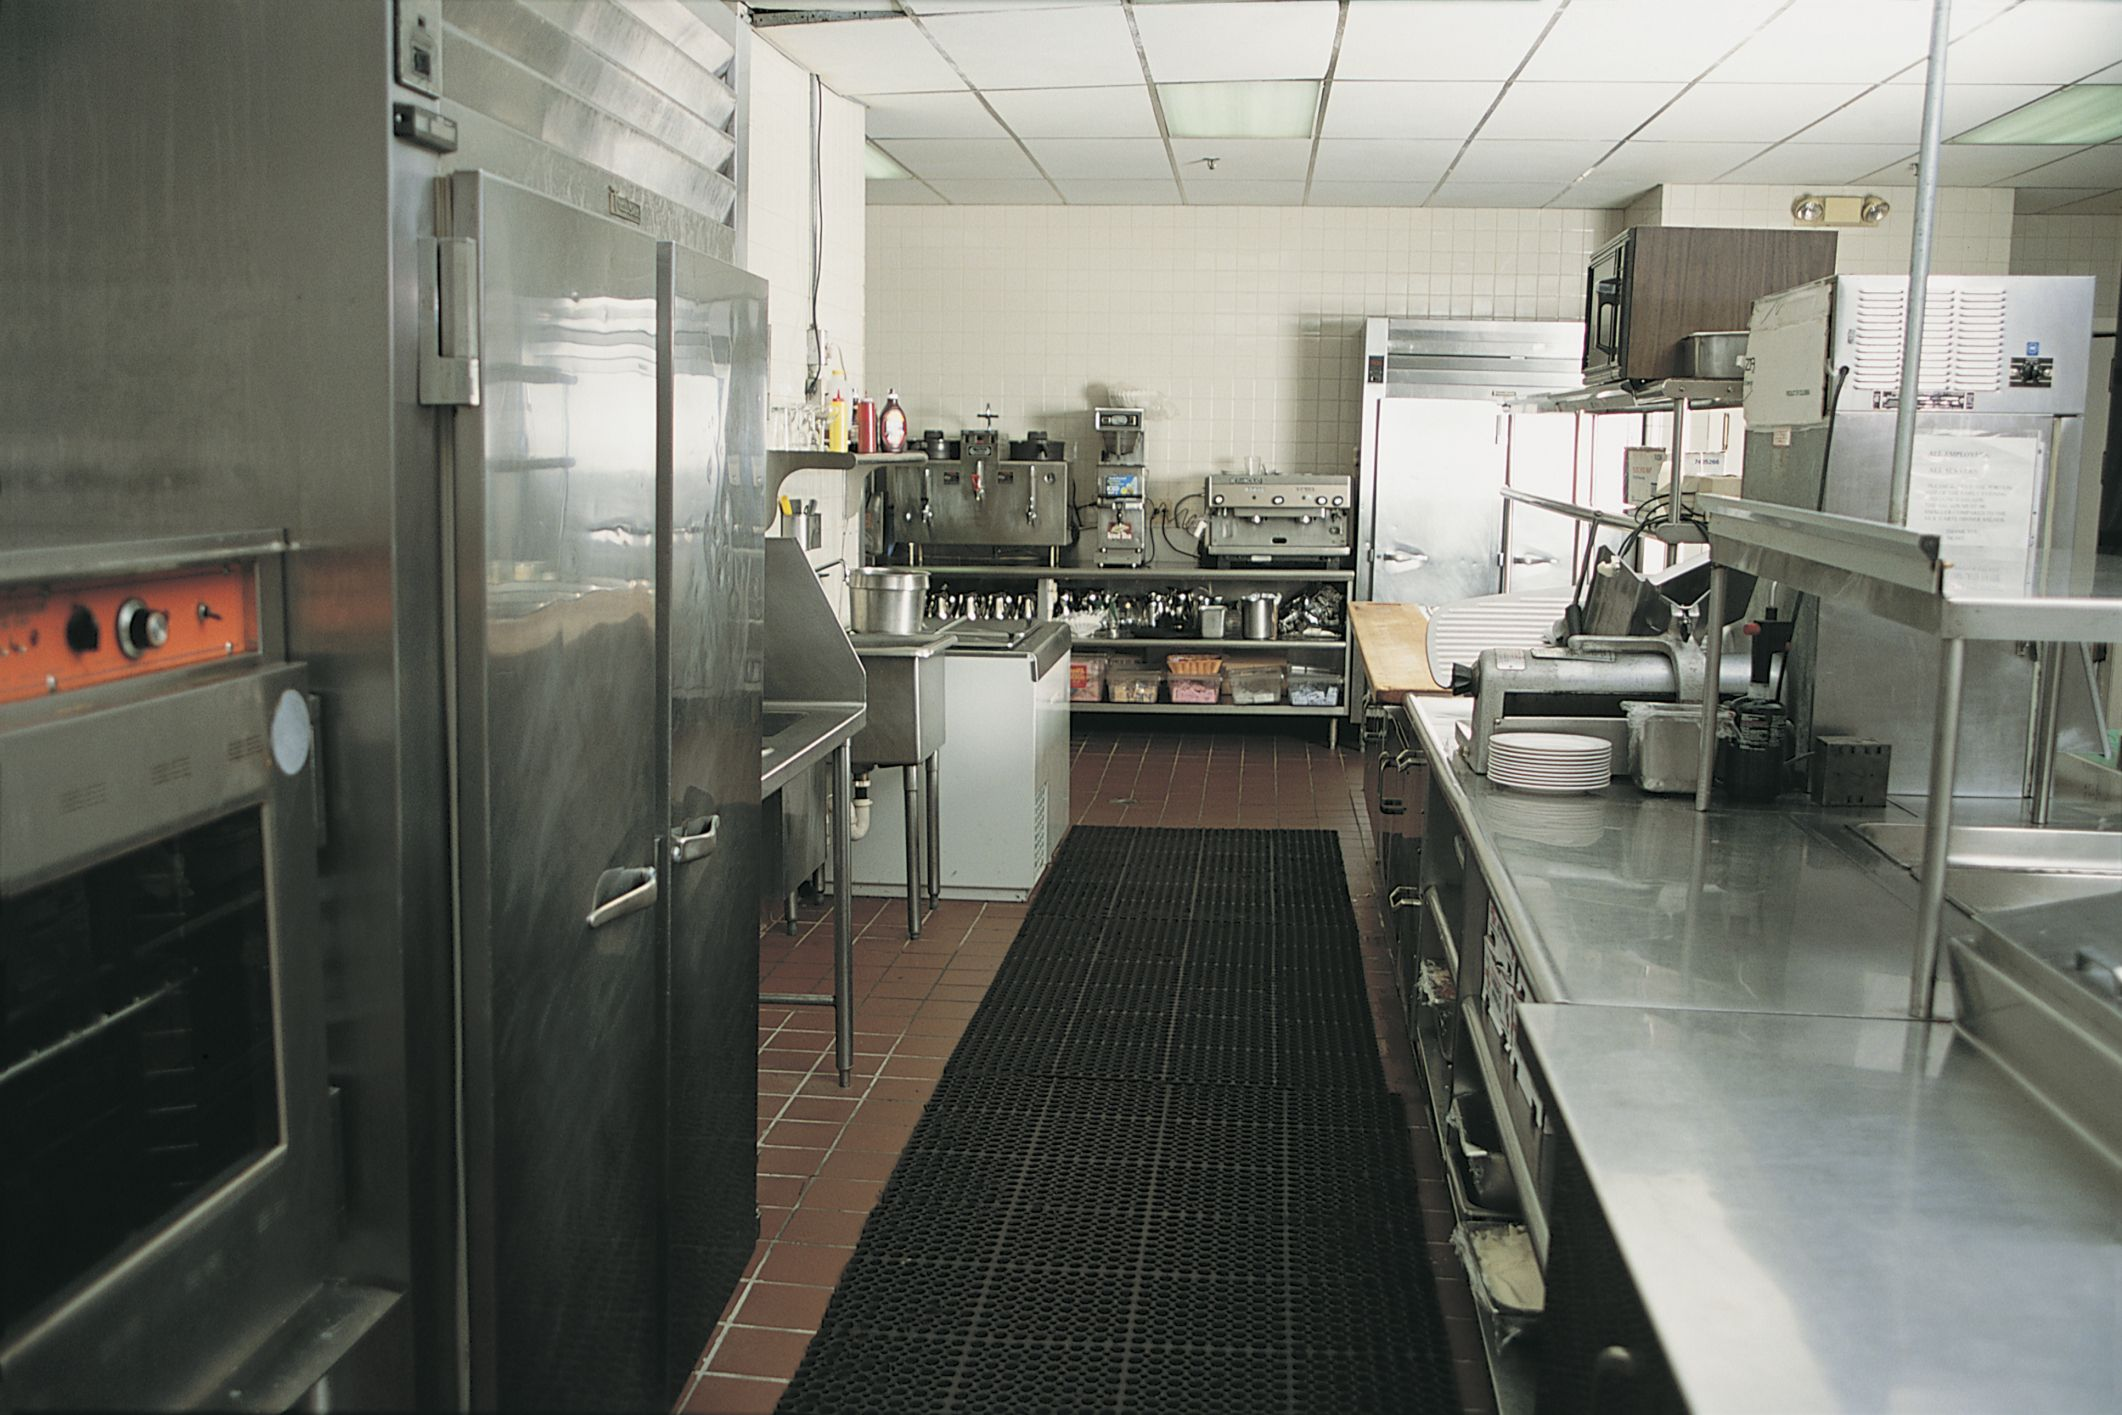 The Estimated Cost For A Commercial Kitchen In A Small Business In